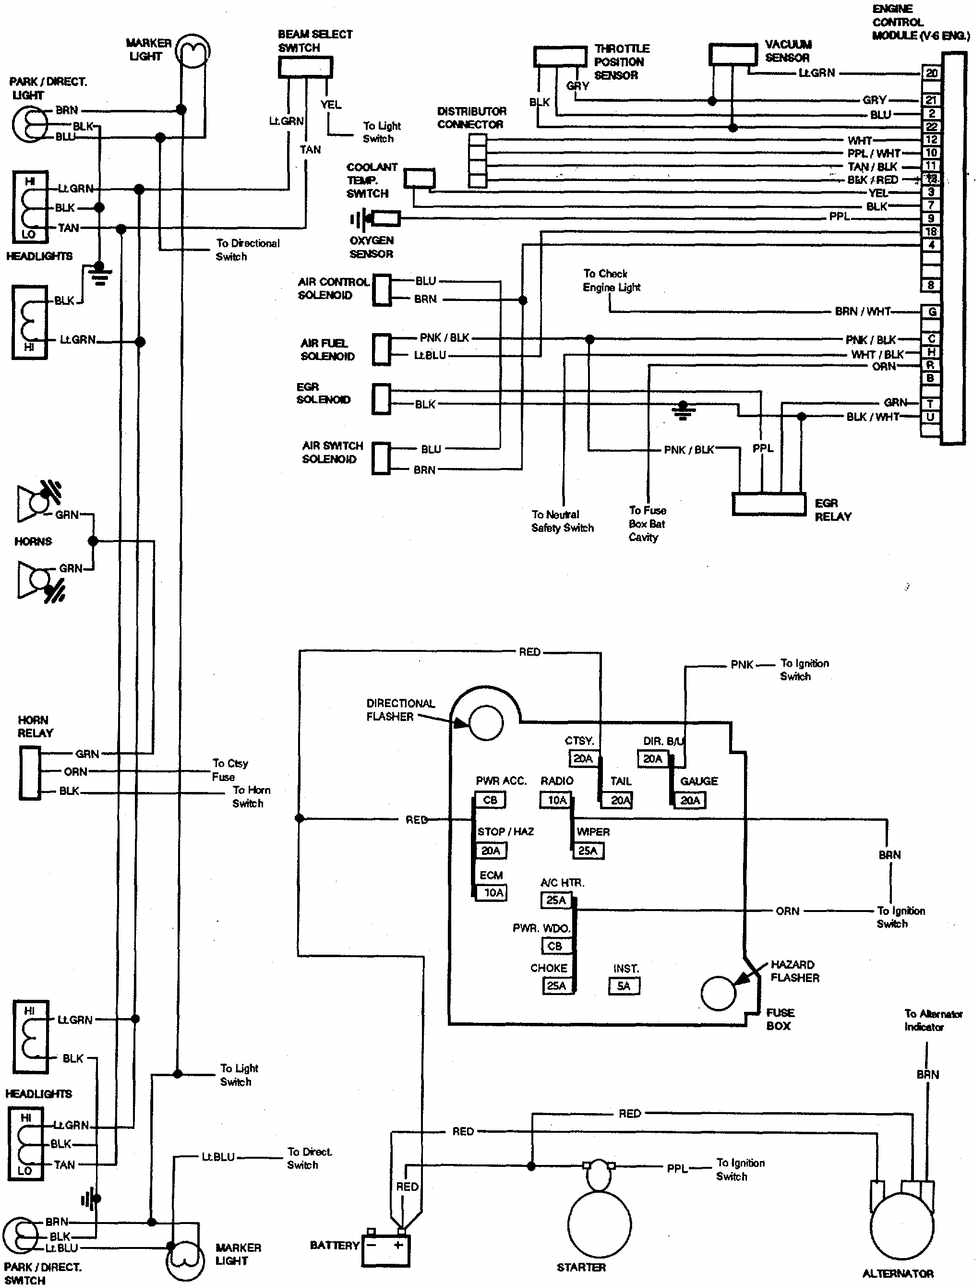 7udbc Ford F150 1989 Wont Start Crank Ok in addition 161059254932 moreover 2008taw With 2007 Toyota Tundra Wiring Diagram furthermore 2003 Pt Cruiser Radio Wiring Diagram together with 130   alternator swap. on cadillac deville radio wiring diagram